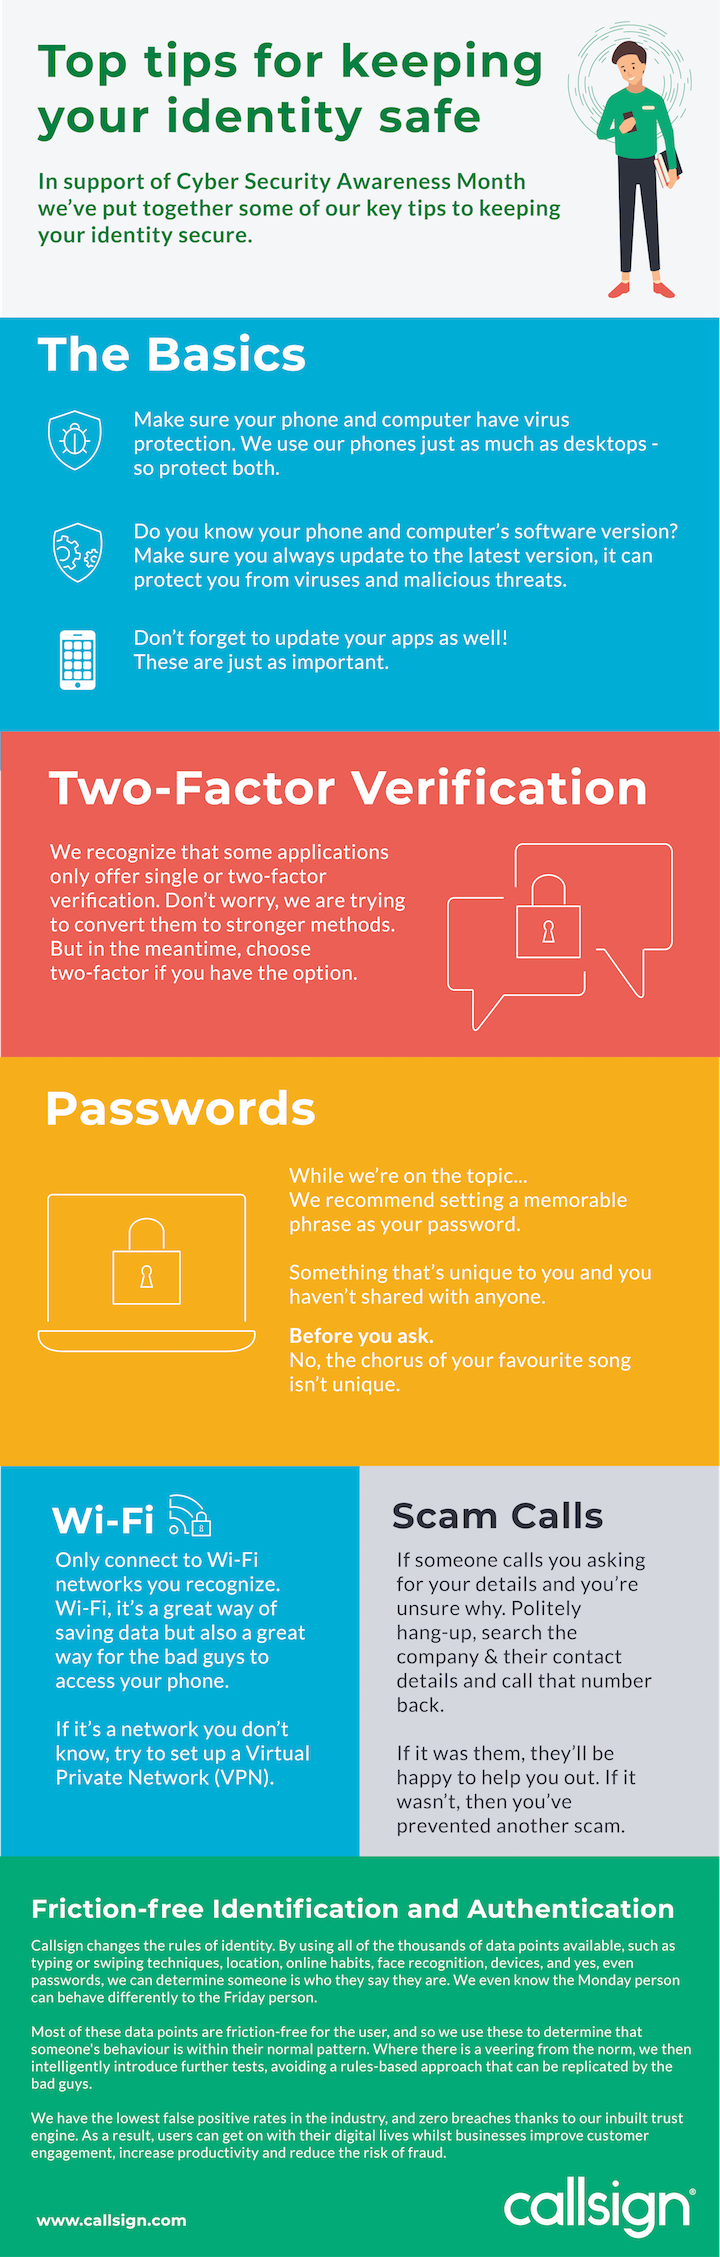 Security tips infographic